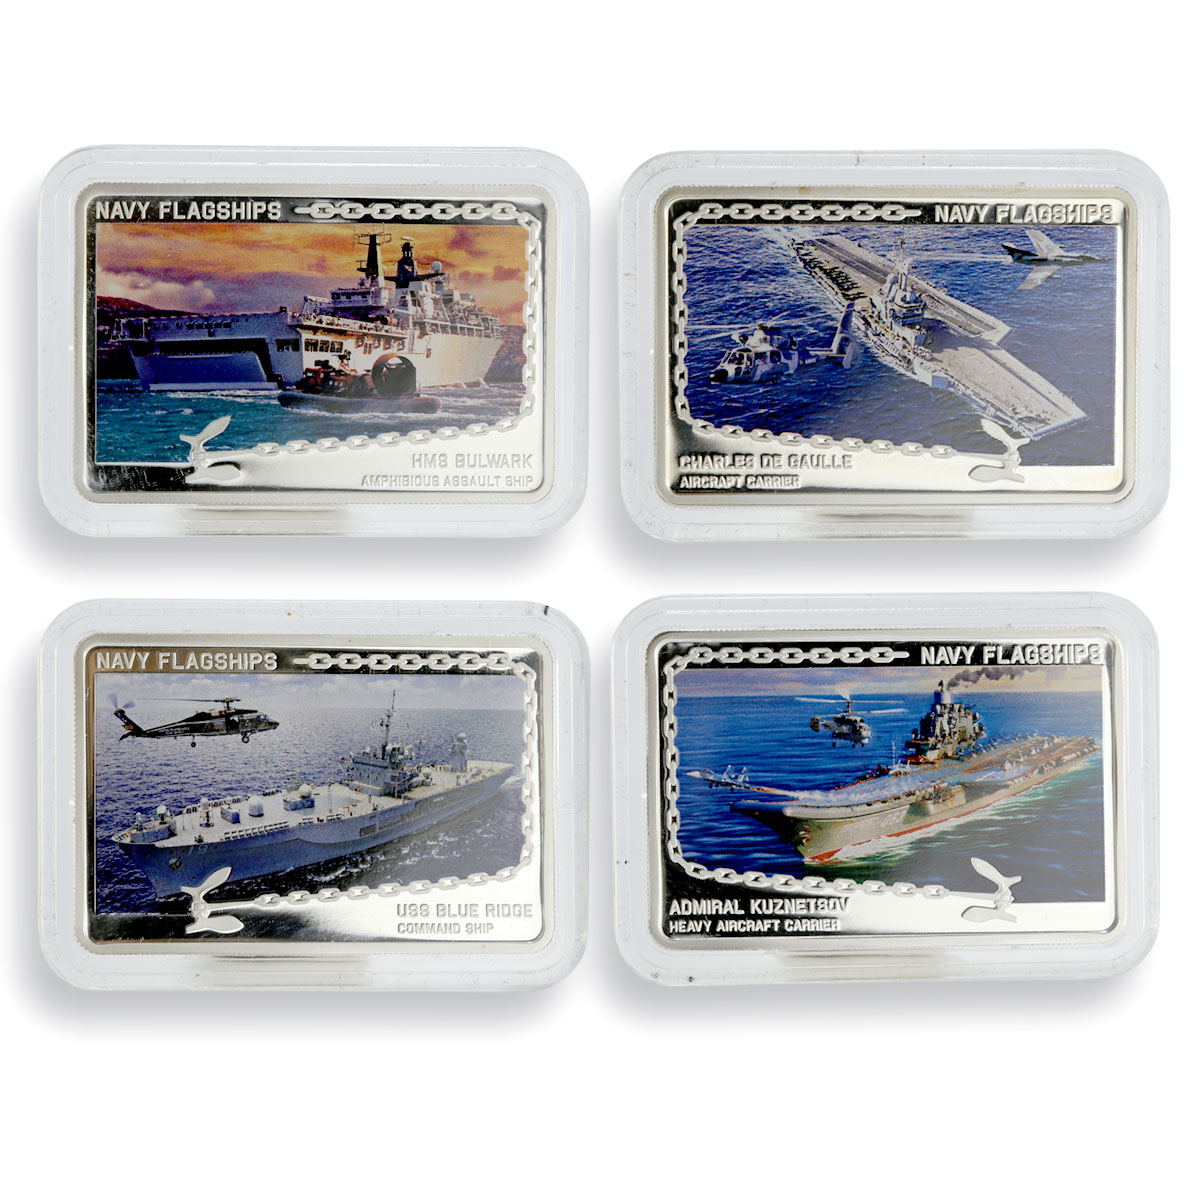 Tanzania set 4 coins Navy Flagships colored proof silver coin 2014